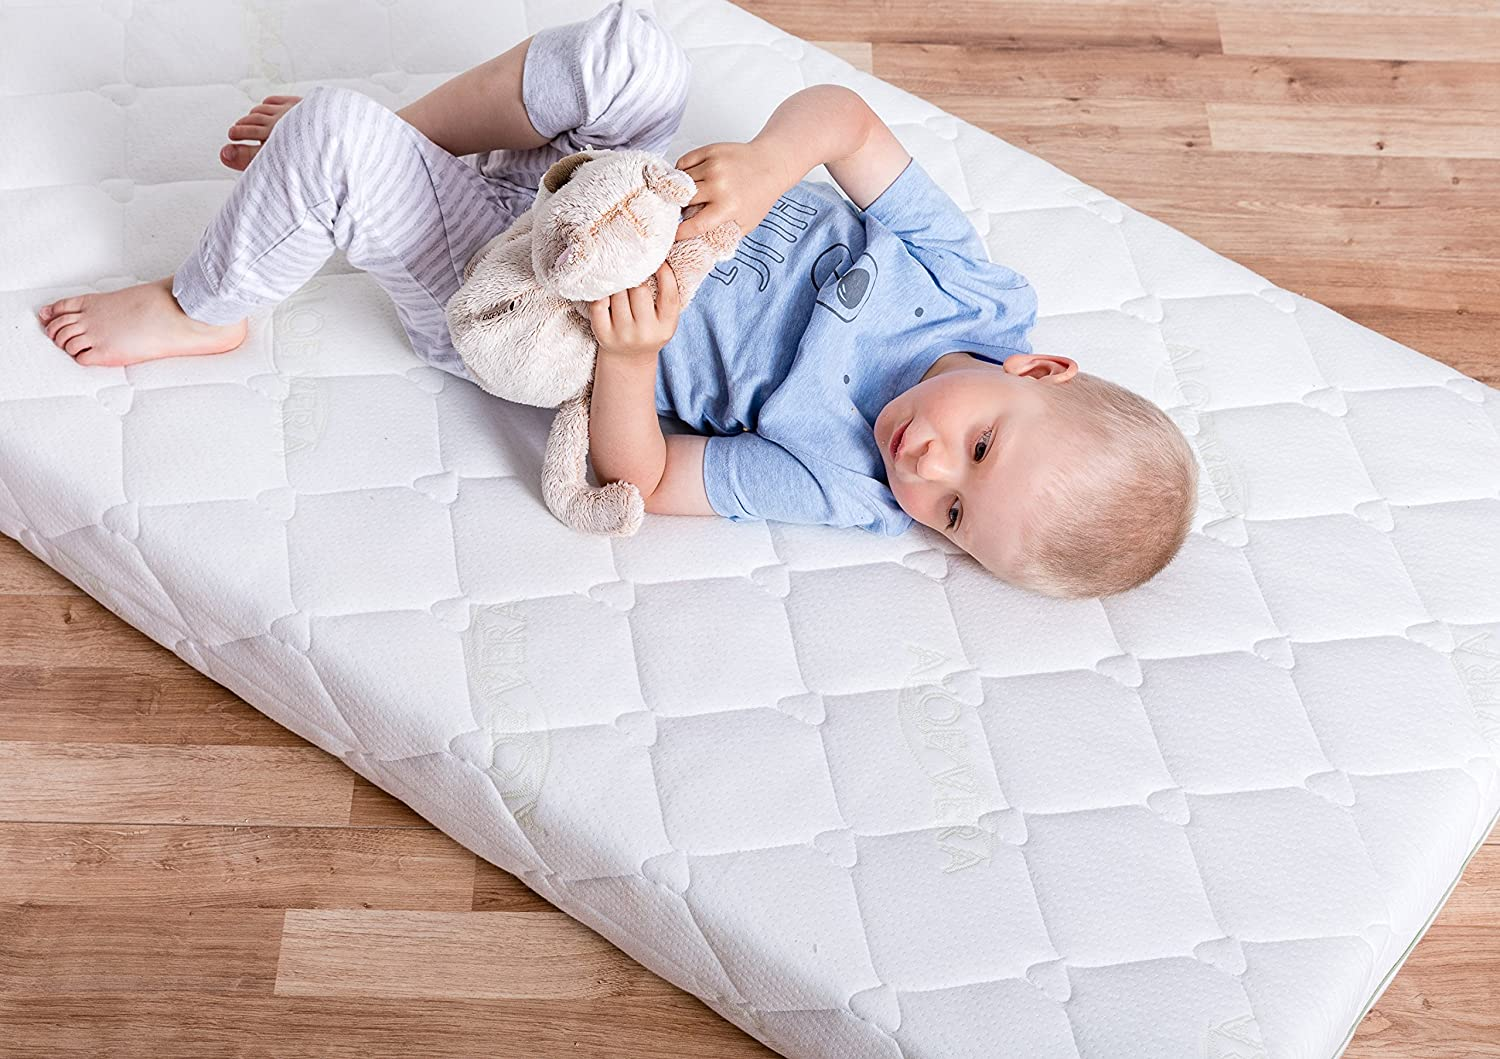 Two Sided Baby//Toddler Firmness The Newest Premium Natural Mattress BestCare/® Height 12 cm Made in The EU Size:Premium 140x70cm Organic Baby Cot Mattress No Chemical Smell No Wool or Latex